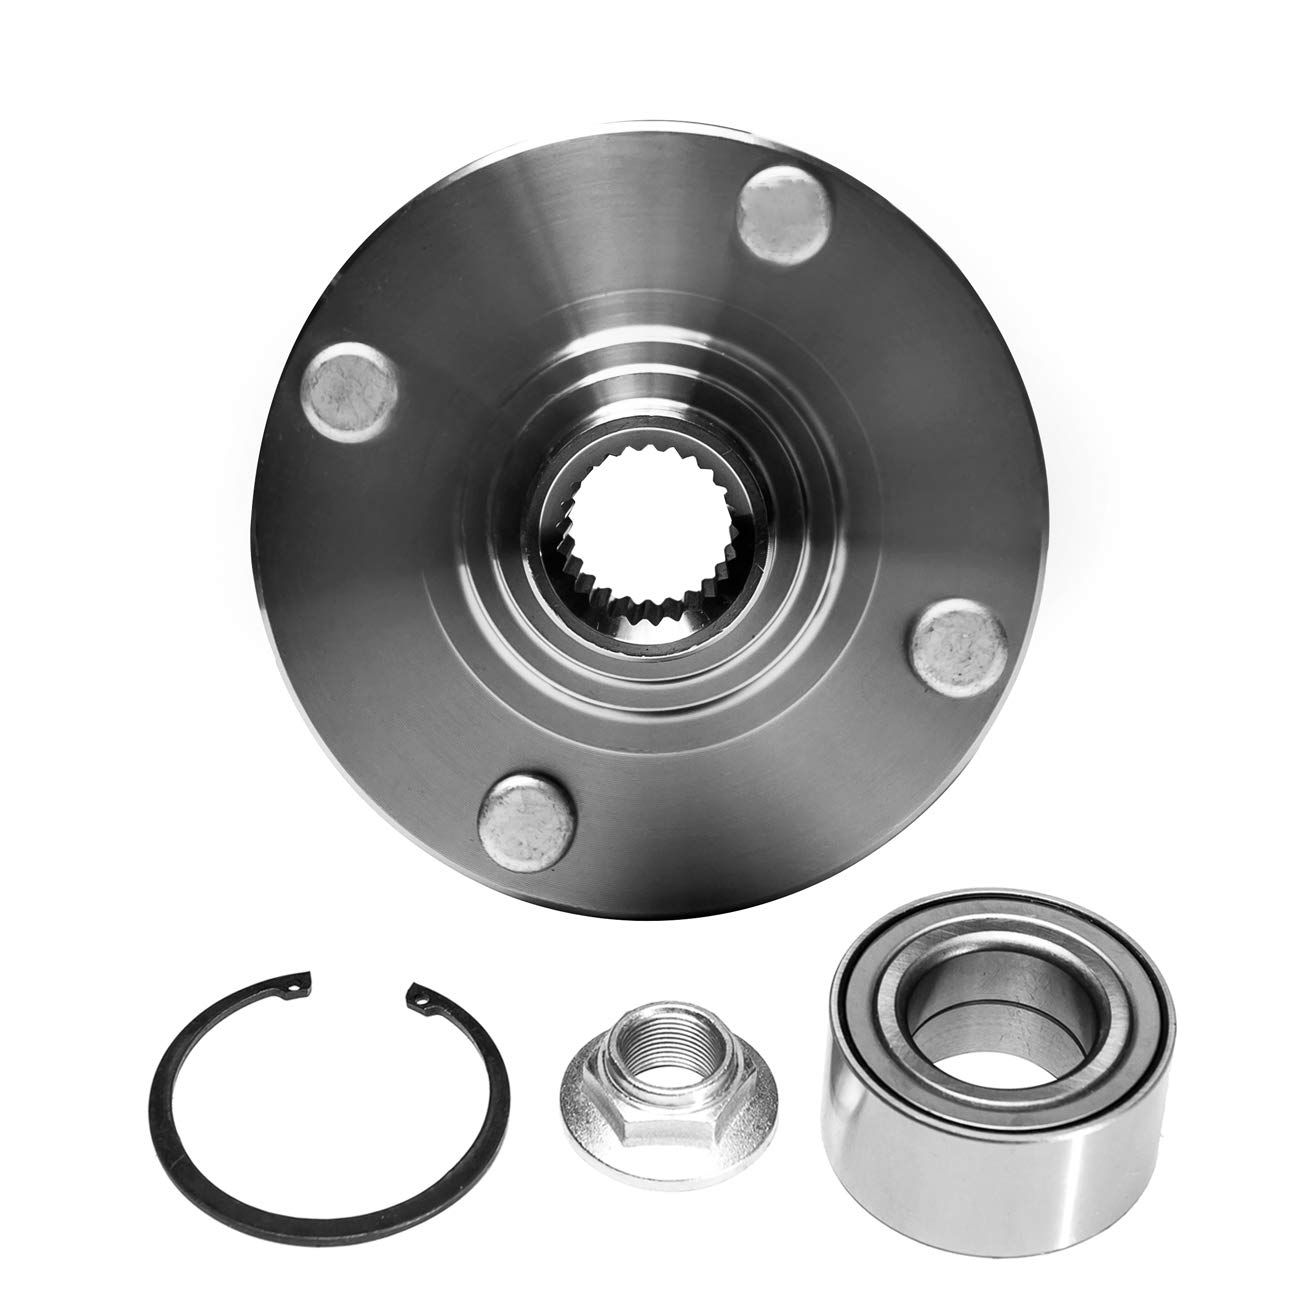 TUCAREST 518510 Front Wheel Bearing and Hub Assembly Compatible 2000 01 02 03 04 05 06 07 08 09 10 2011 Ford Focus Hub Repair Kit 4 Lug